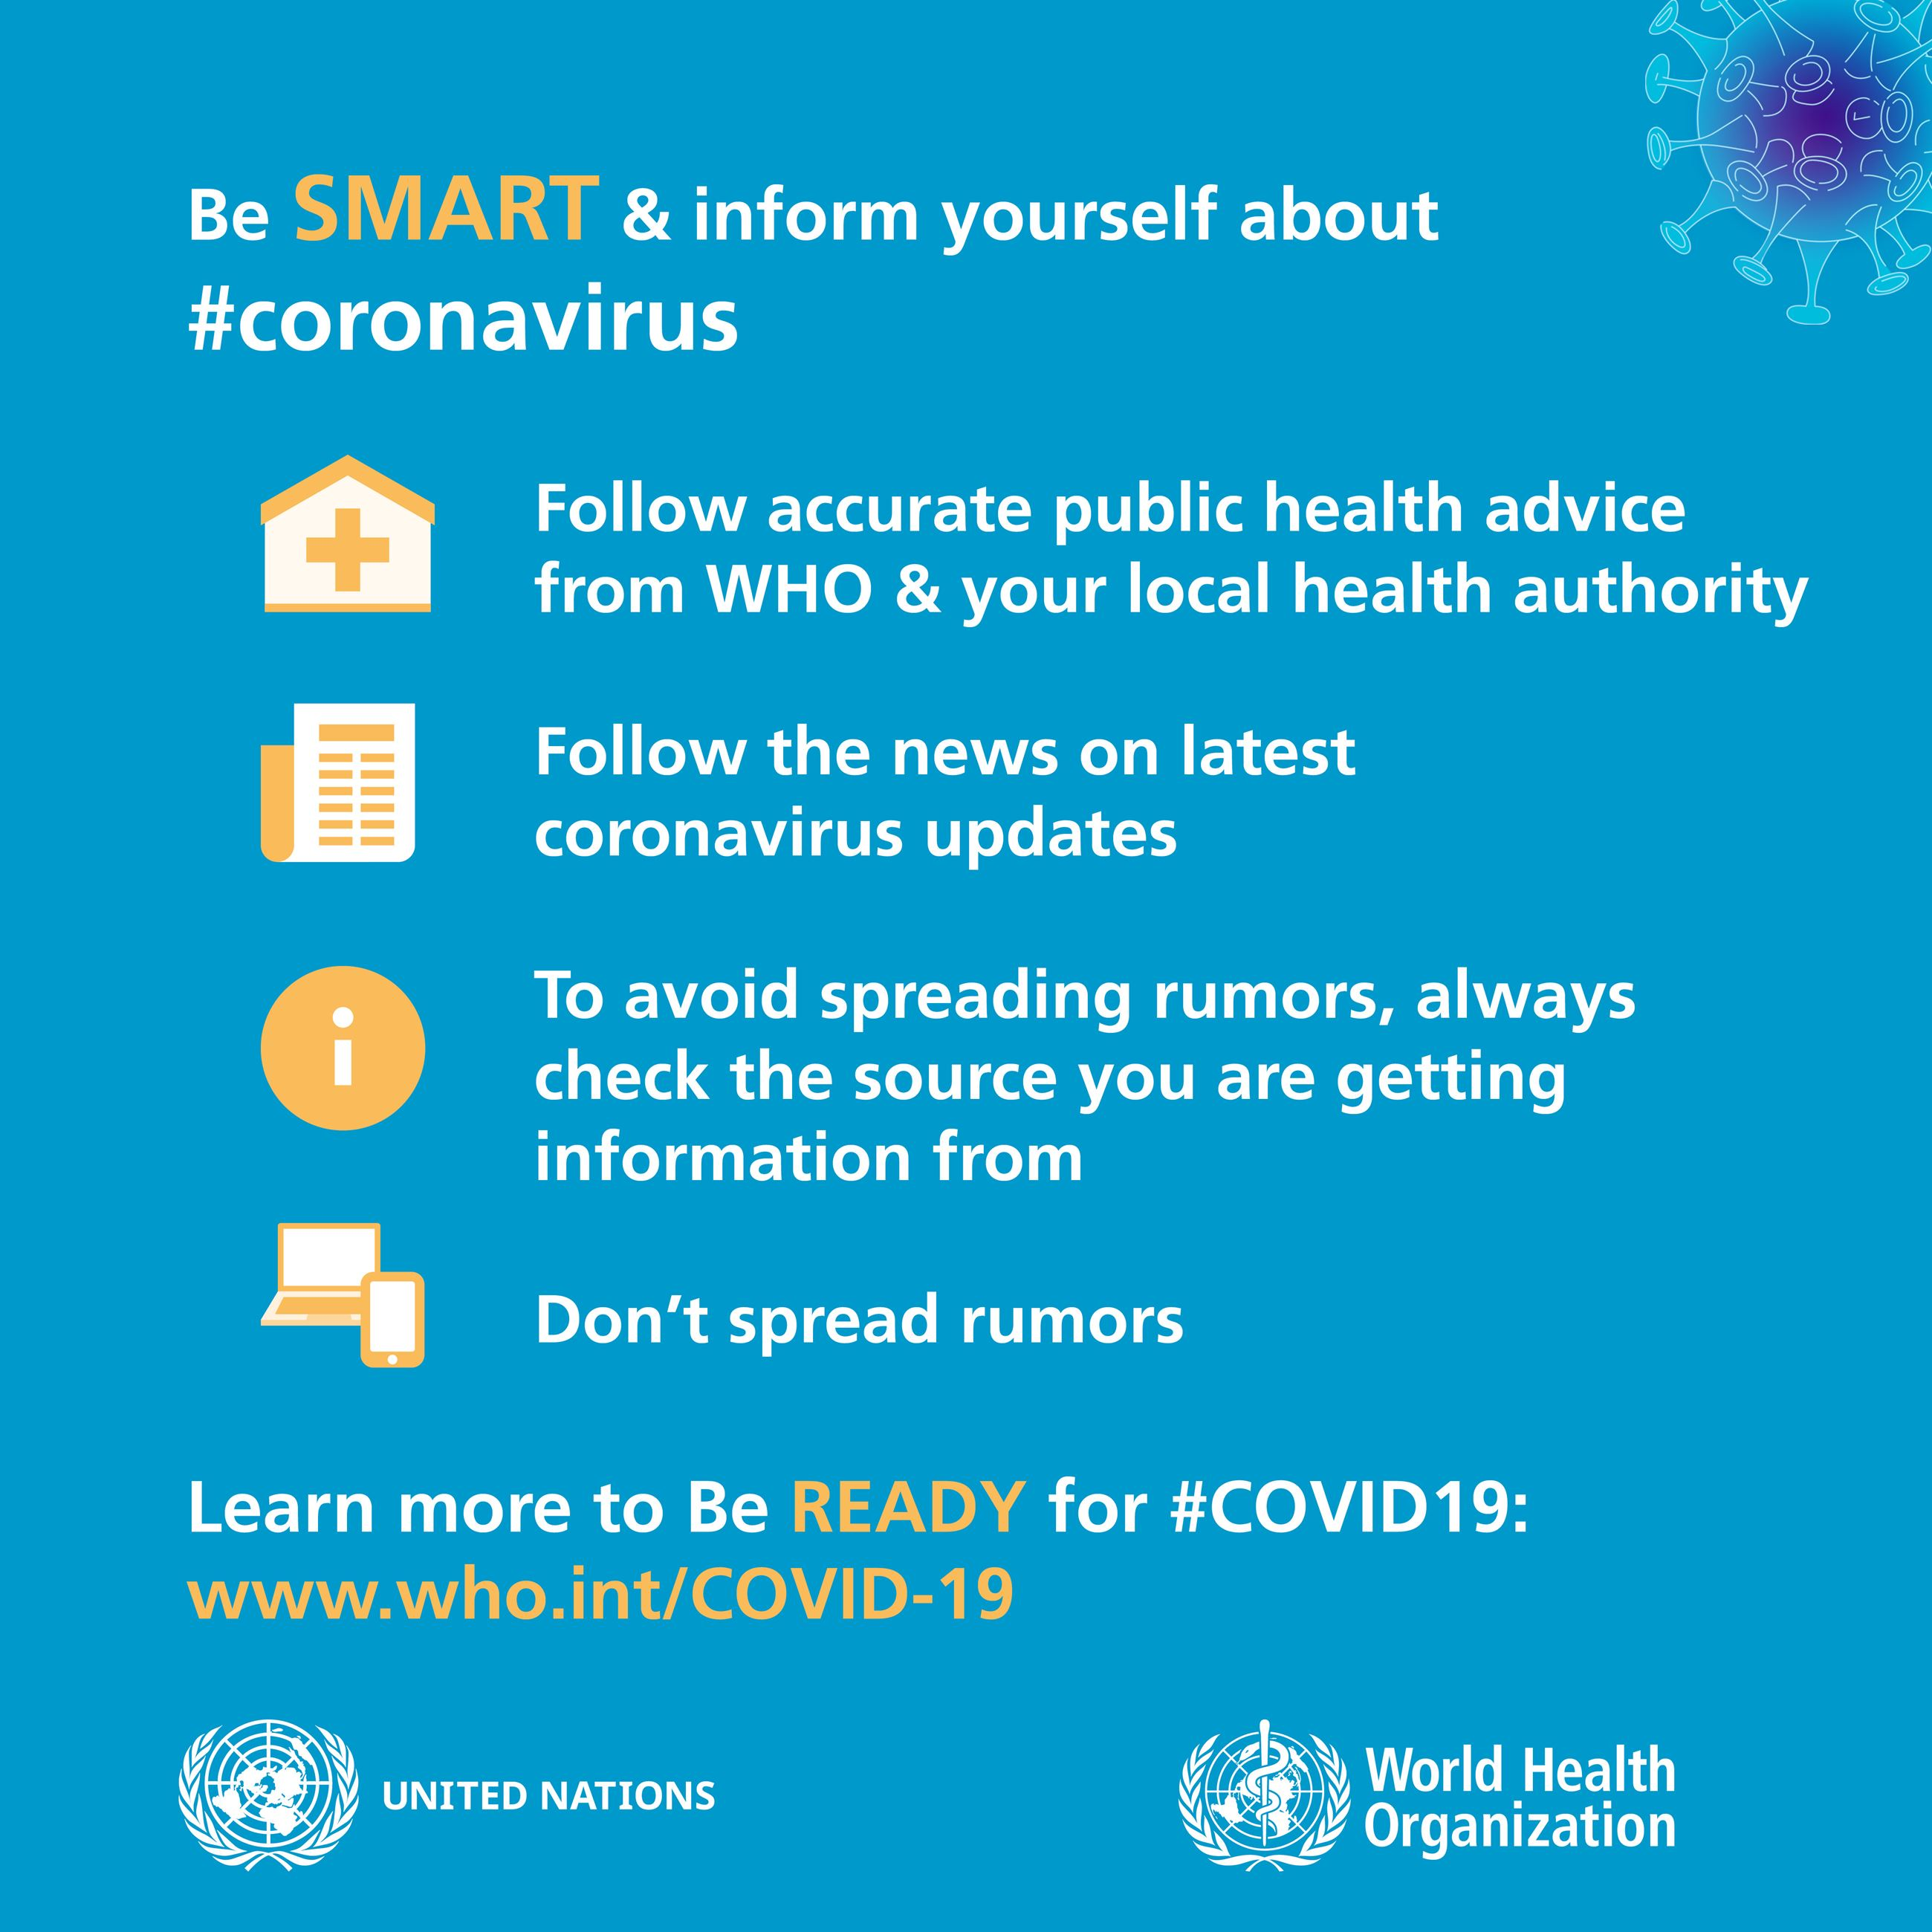 """Be SMART & inform yourself about #coronavirus"" - from who.int"